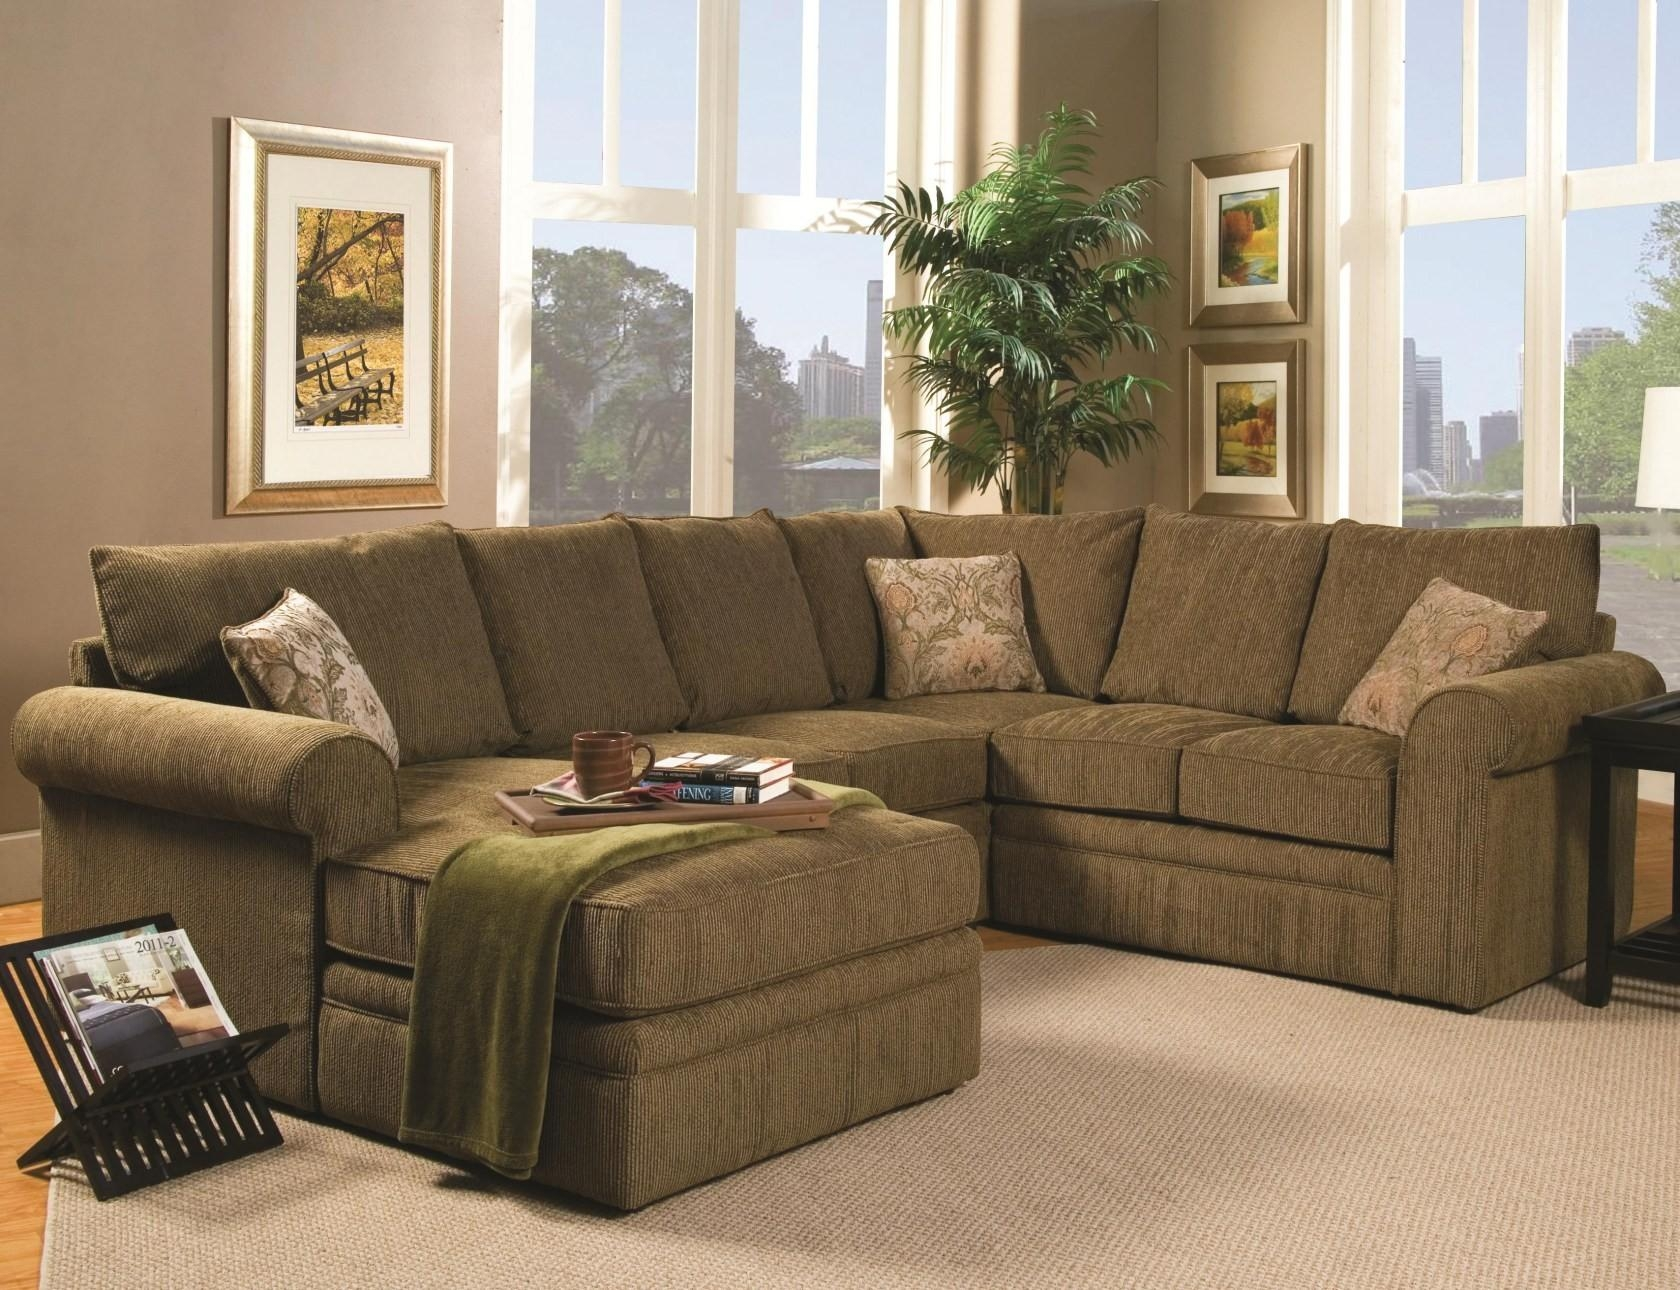 The Big Room For U Shaped Leather Sectional Sofa : S3Net Regarding Sectinal Sofas (View 18 of 20)